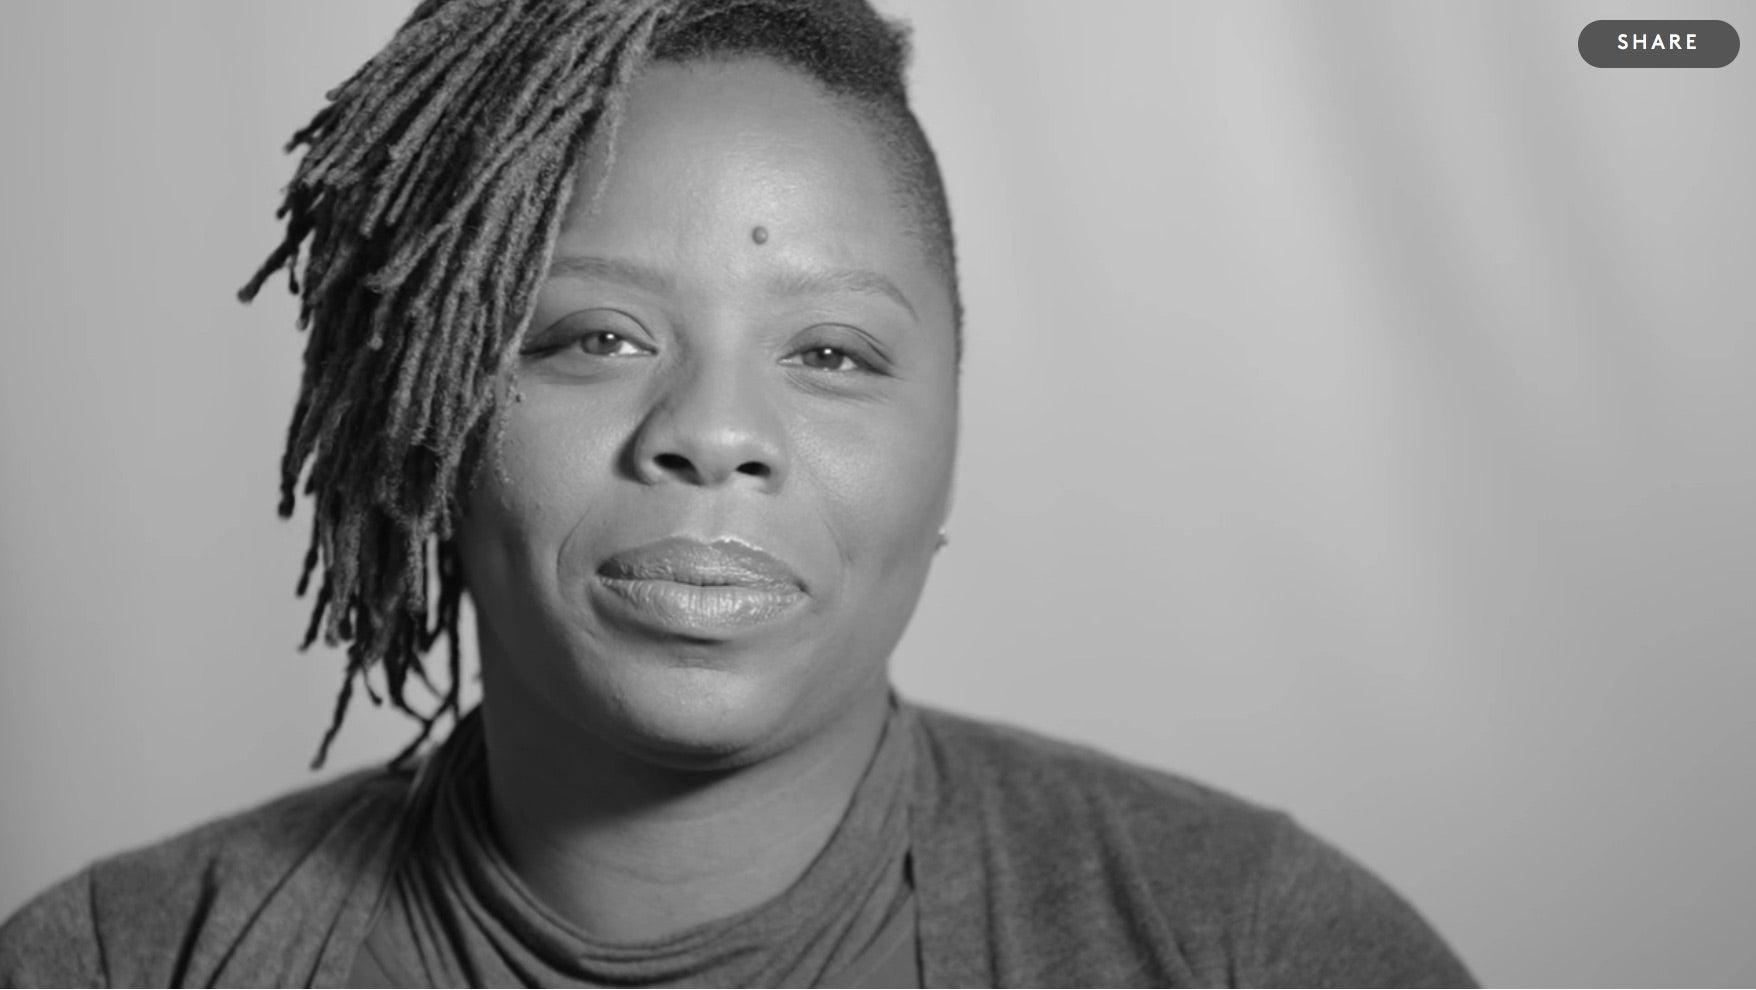 'Black Lives Matter' Co-Founder Patrisse Cullors on Hair Tales: 'There Has to be More Than My Hair'